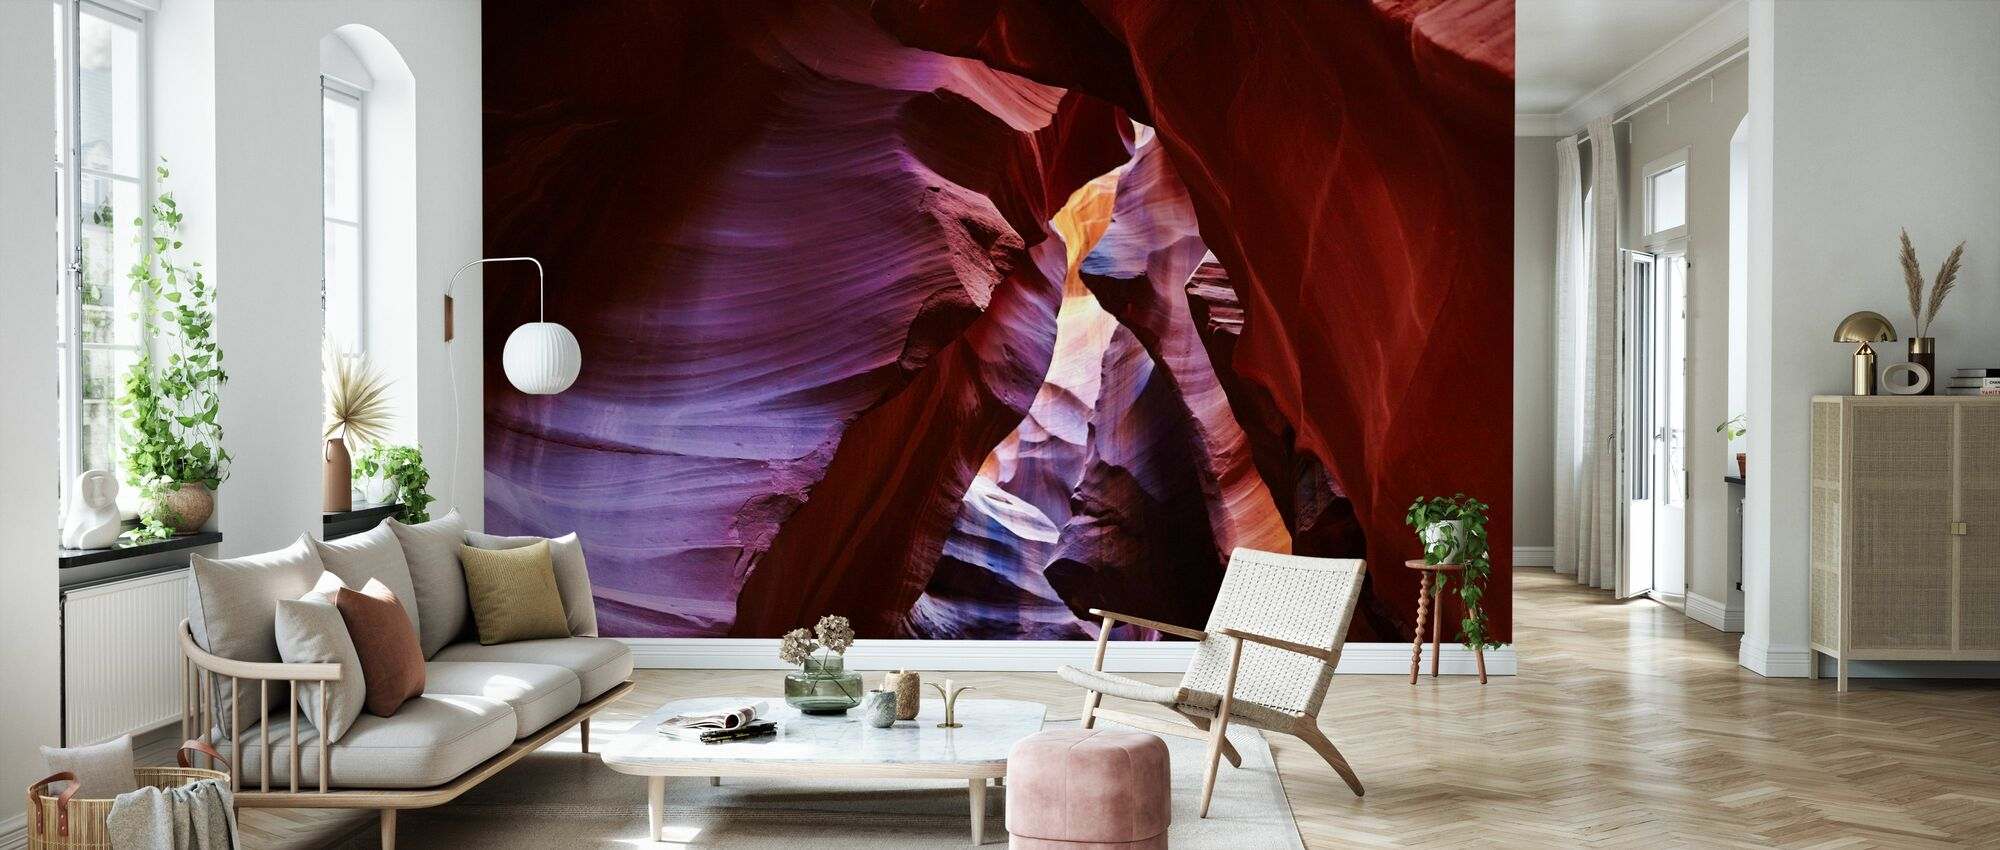 Antelope Canyon - Wallpaper - Living Room